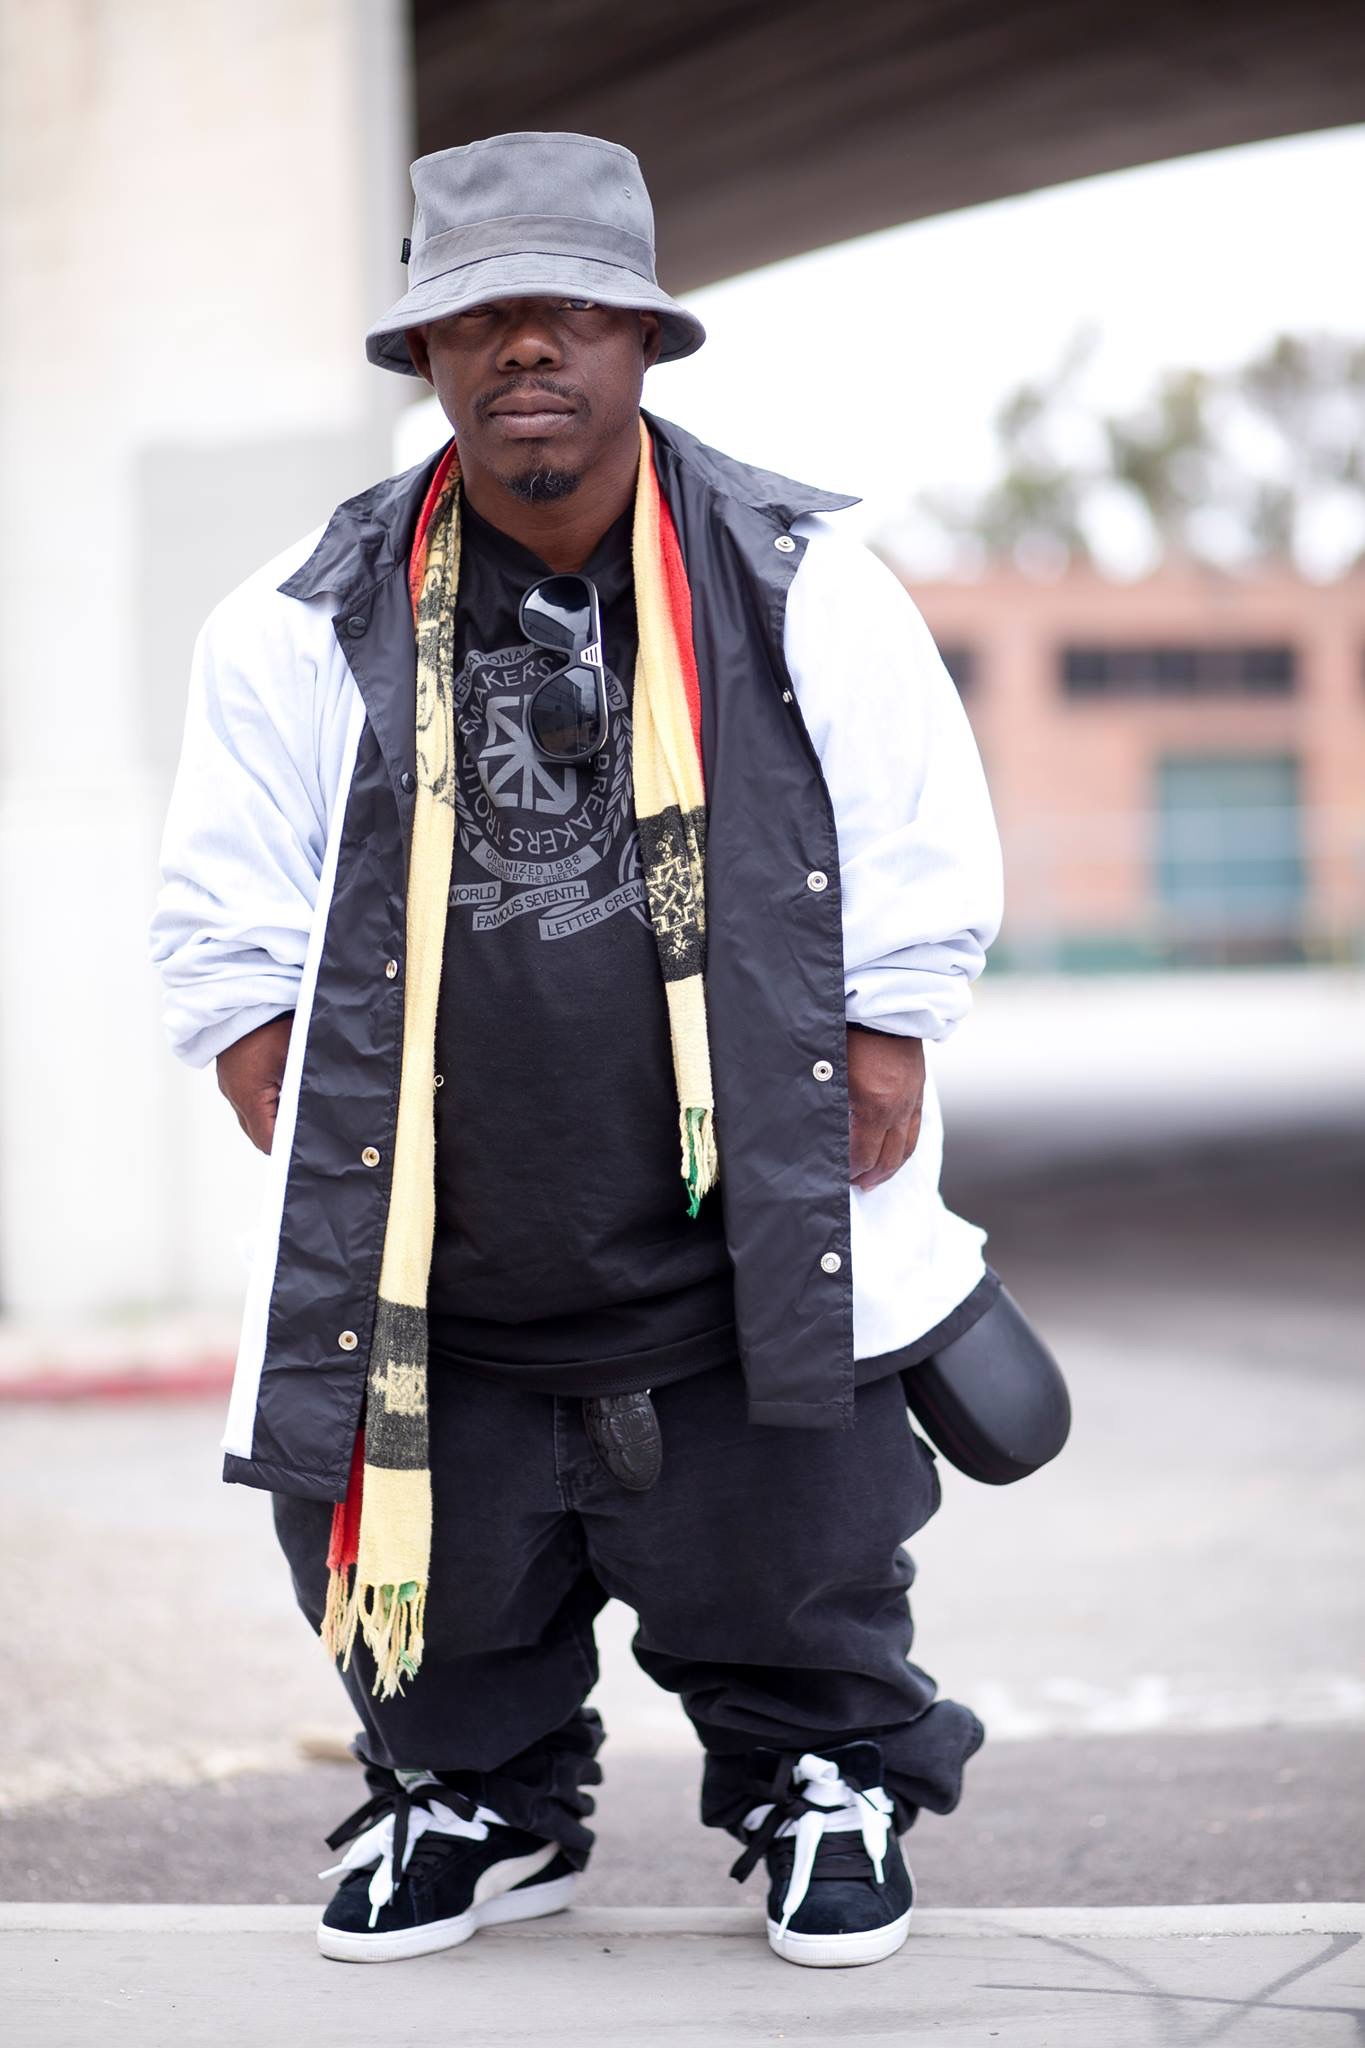 Bushwick Bill passed away Sunday surrounded by loved ones after battling Stave IV pancreatic cancer.